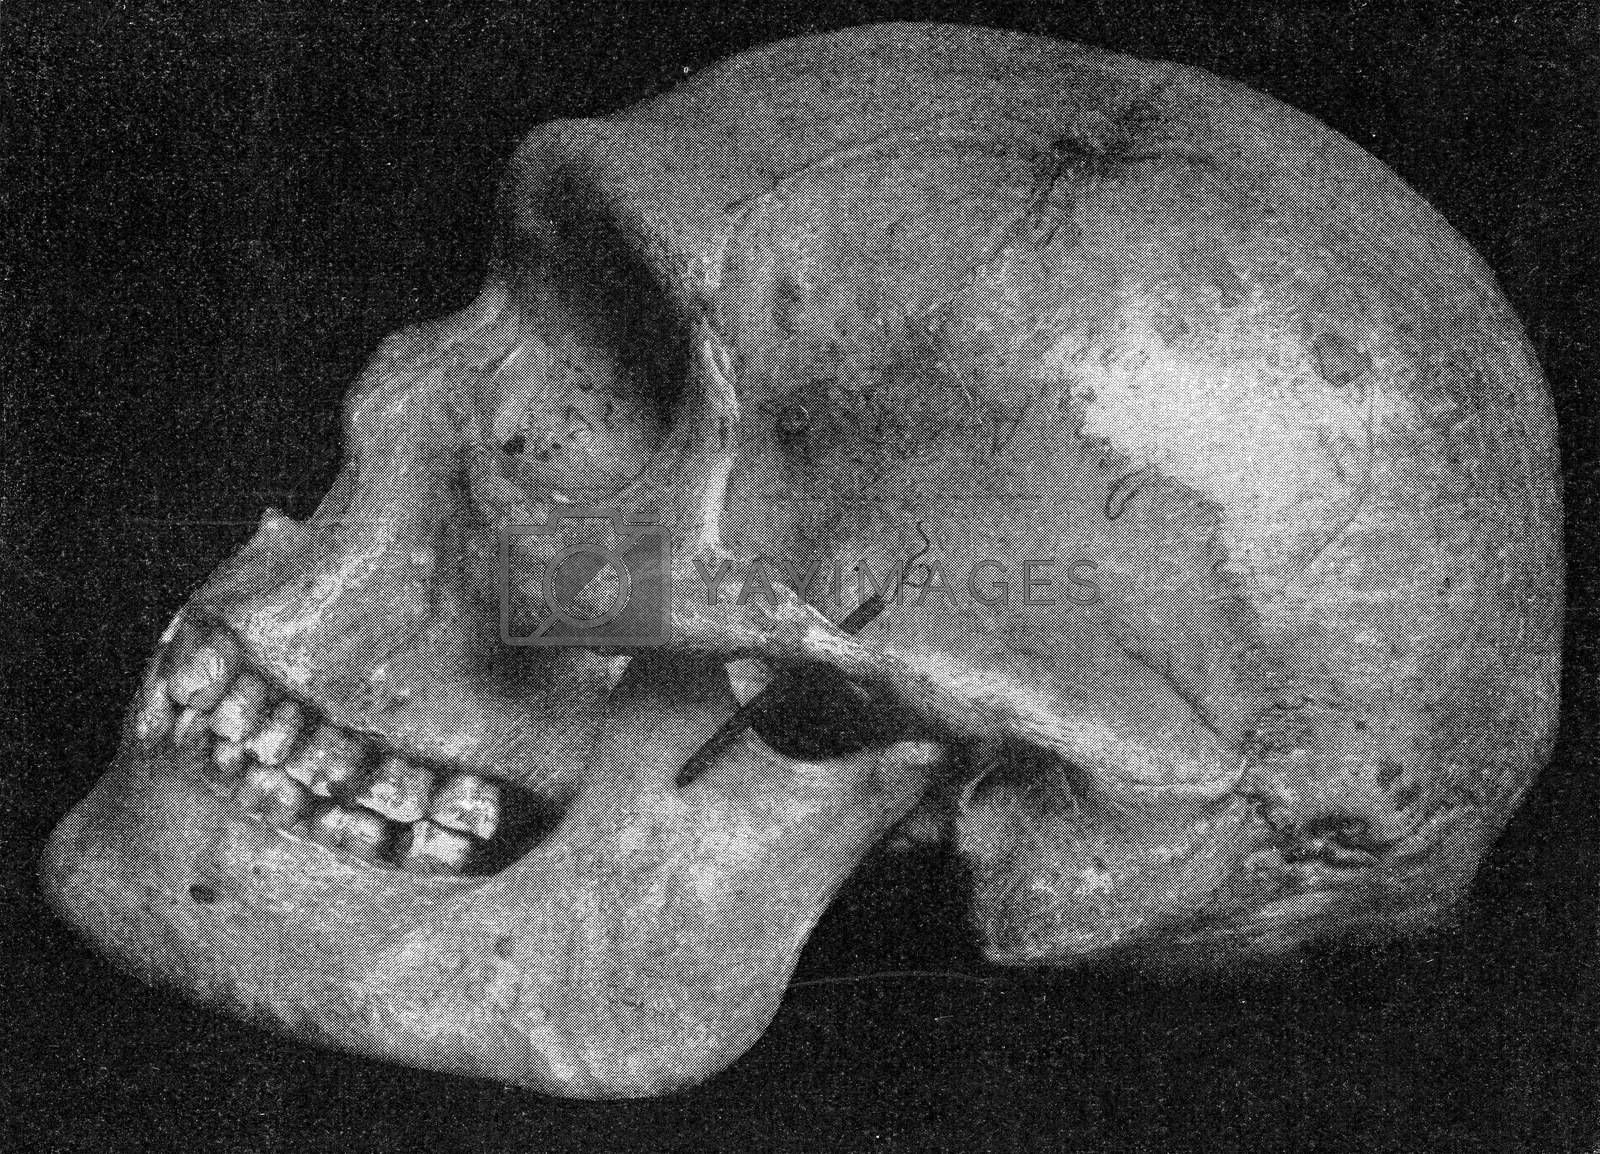 Side view of the same skull of a primitive Australian with very pronounced supraorbital bulges, vintage engraved illustration. From the Universe and Humanity, 1910.